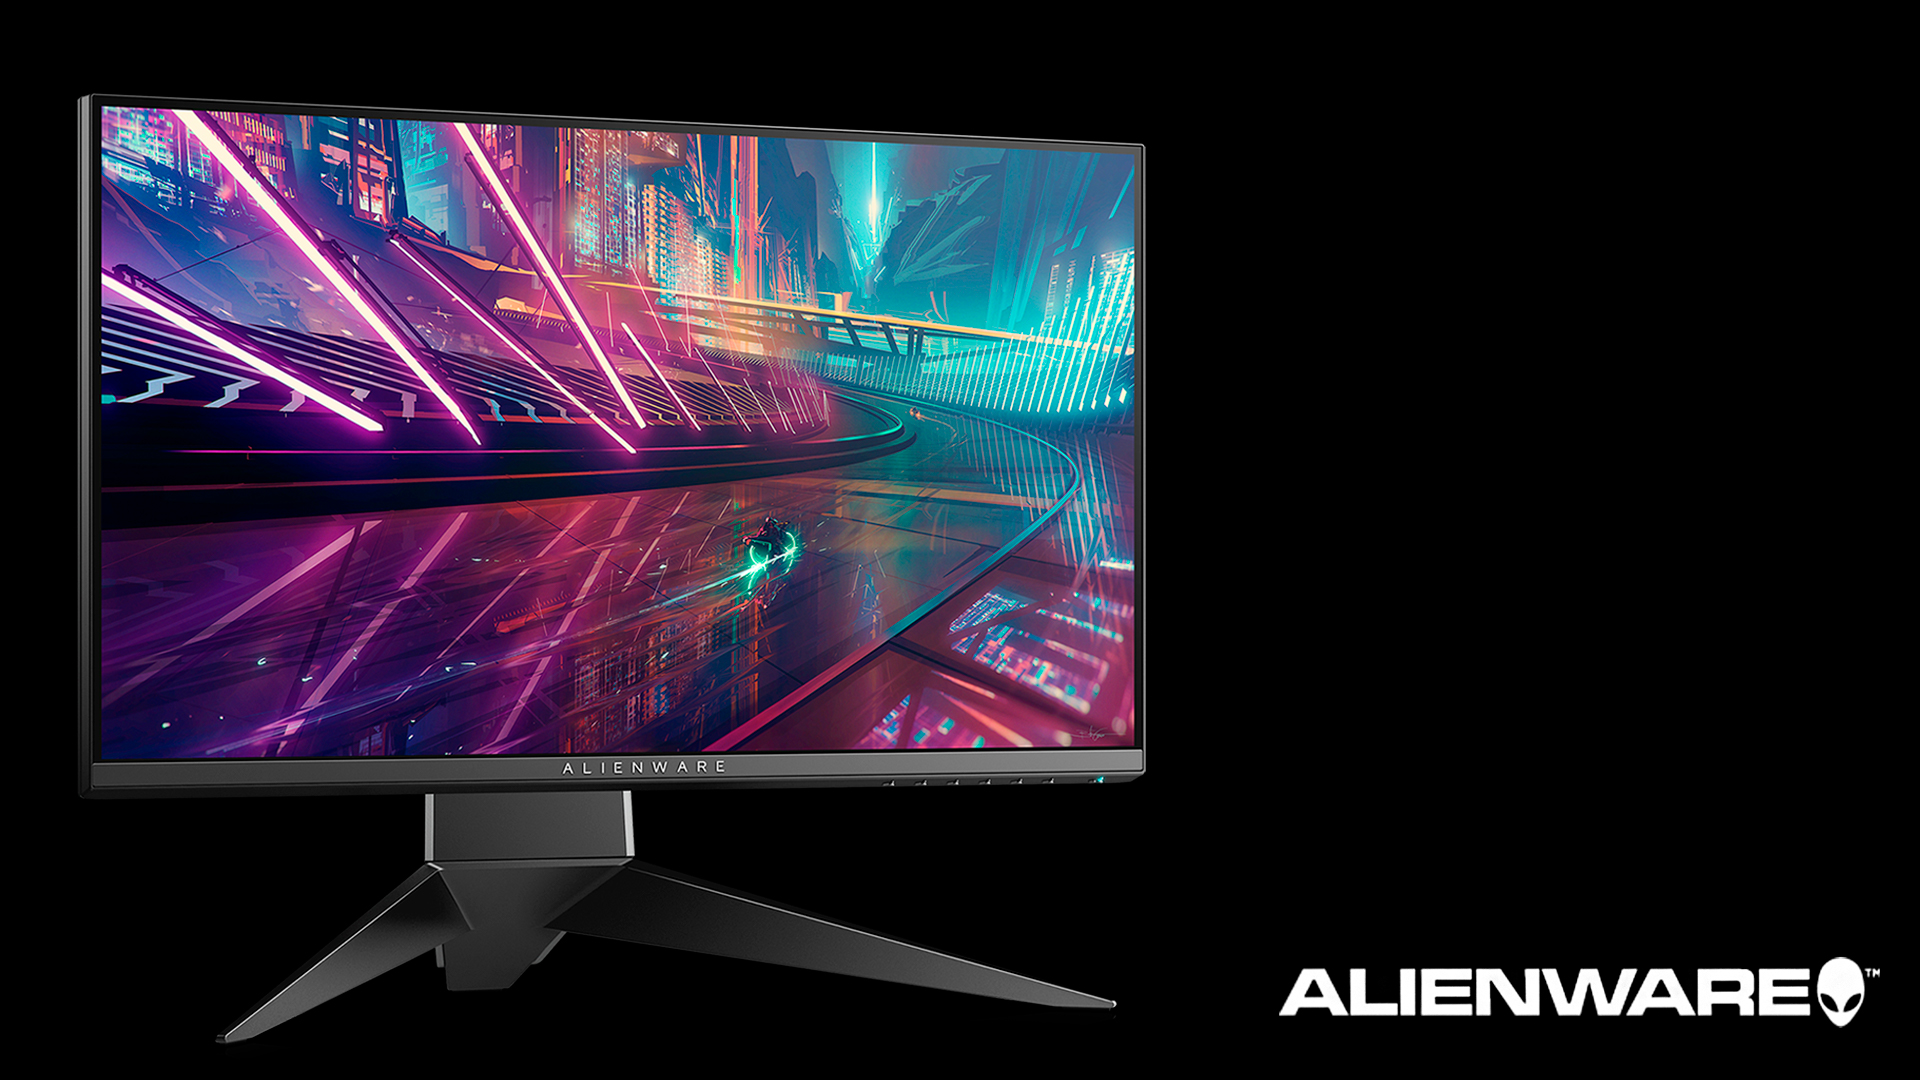 alienware aw2518h review 00